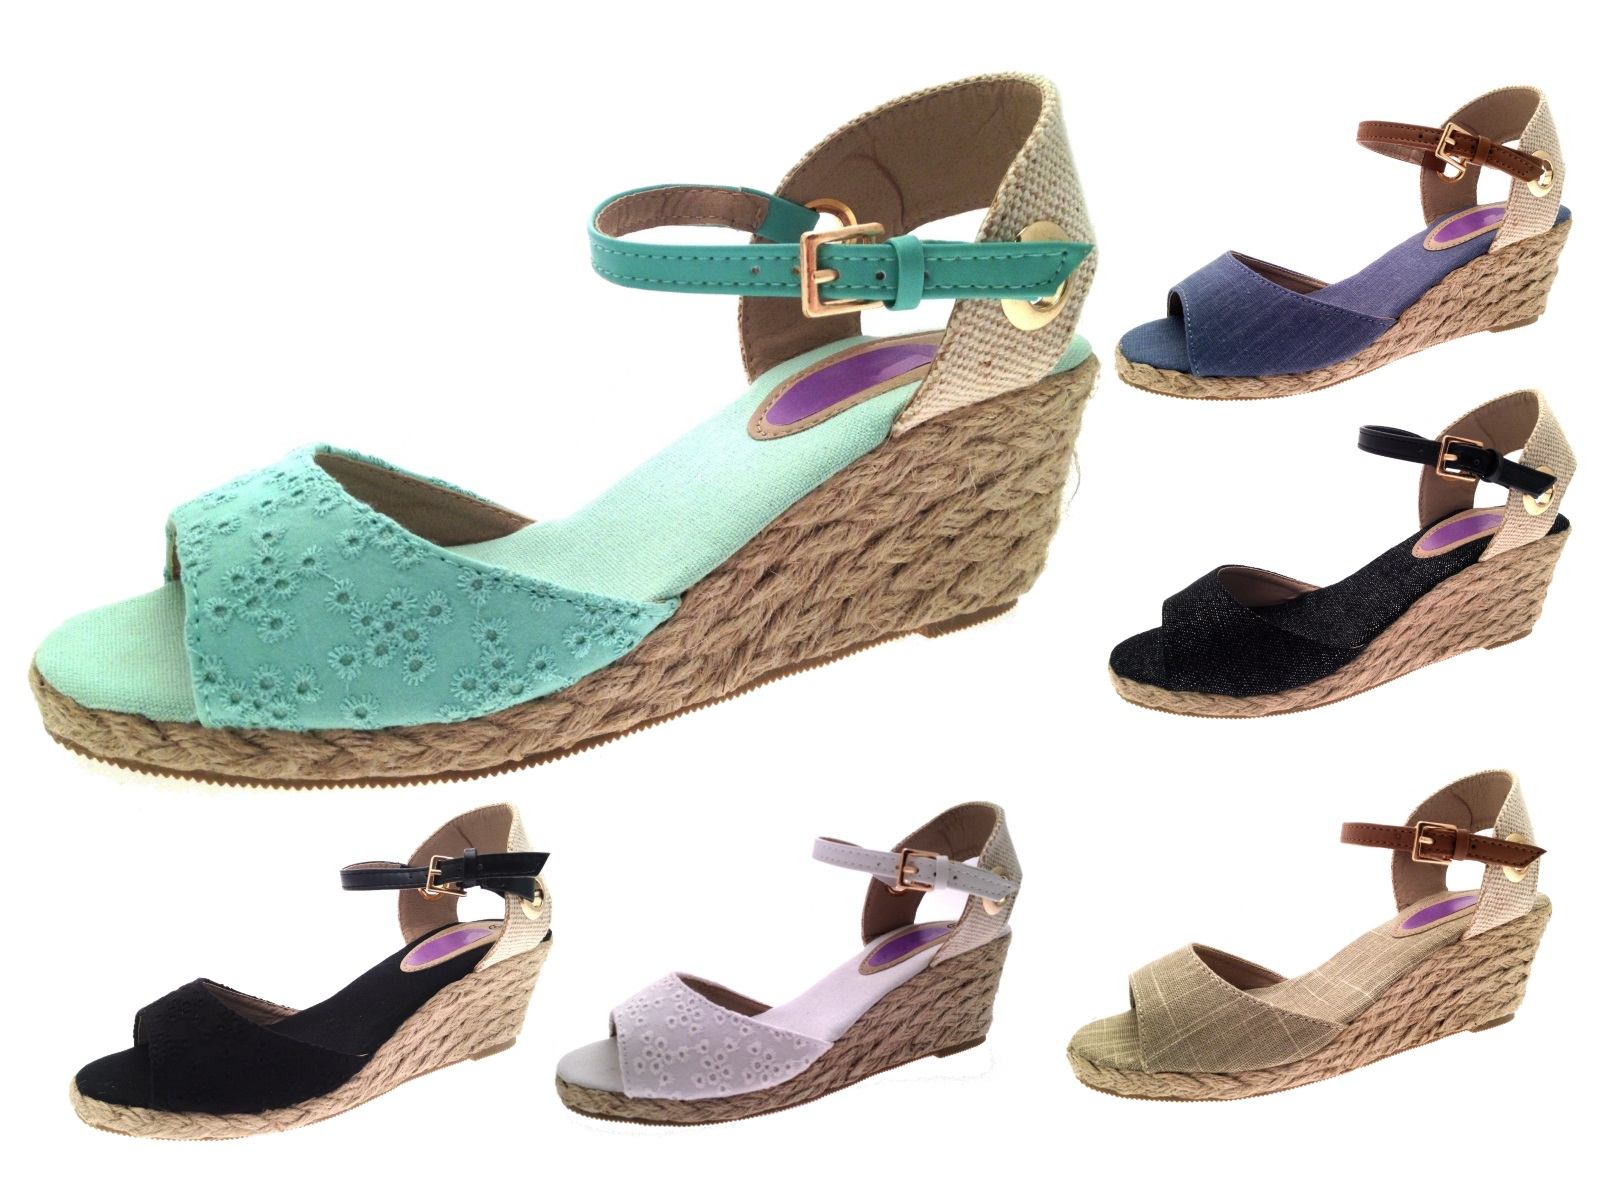 Innovative Clothes Shoes Amp Accessories Gt Women39s Shoes Gt Sandals Amp Be